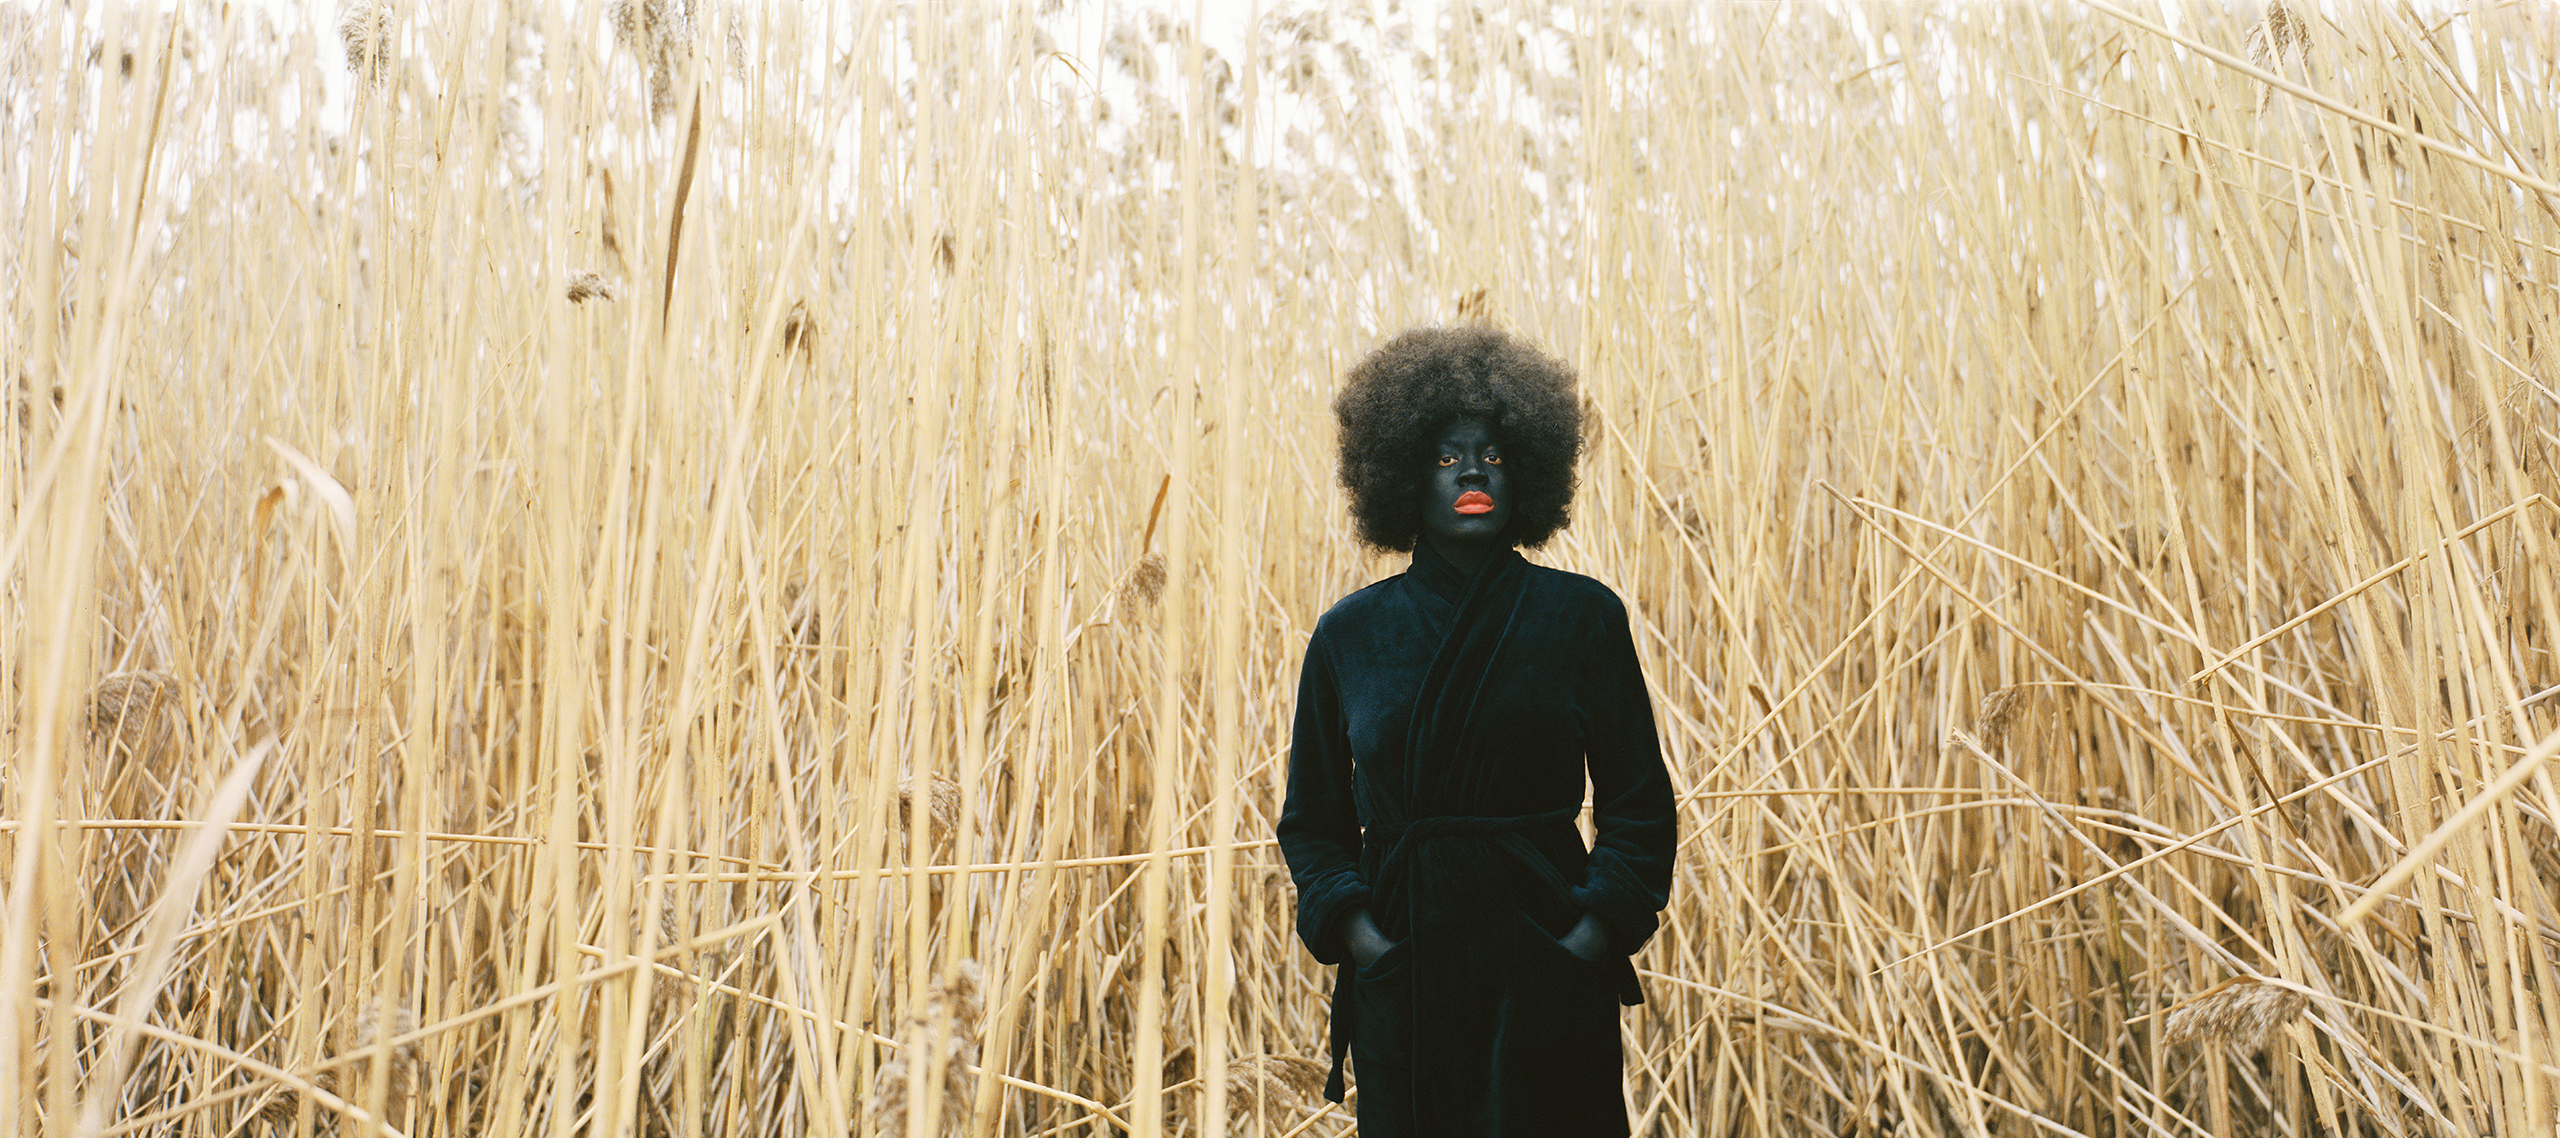 Xaviera Simmons, <i>One Day and Back Then (Standing)</i>, 2007; Chromira c-print, 30 x 40 in.; Collection of Darryl Atwell; © Xaviera Simmons, Courtesy David Castillo Gallery